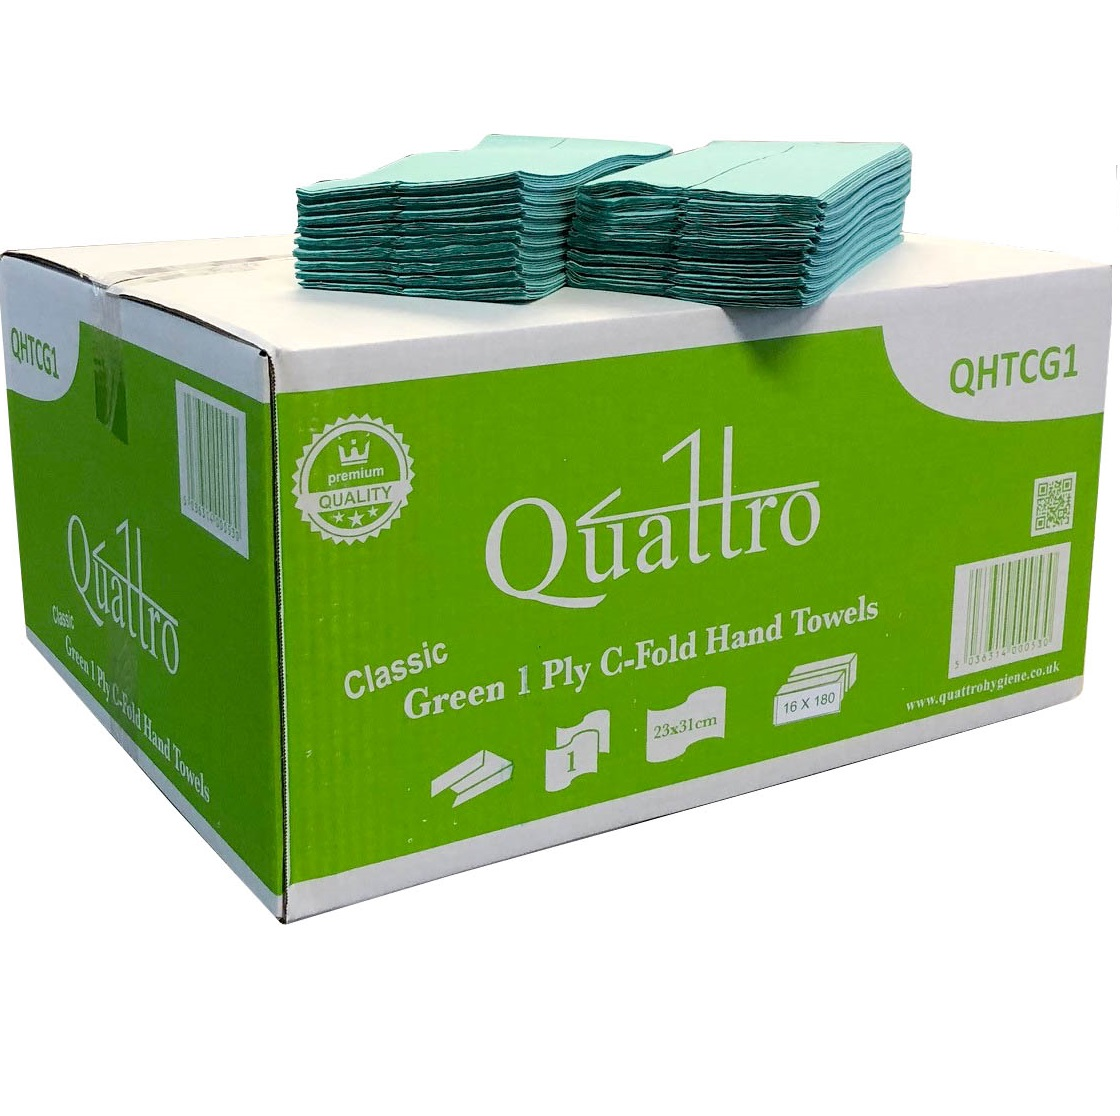 Quattro-Super-Soft-Green-C-Fold-1ply-H-Towel--2880--QHTCG1